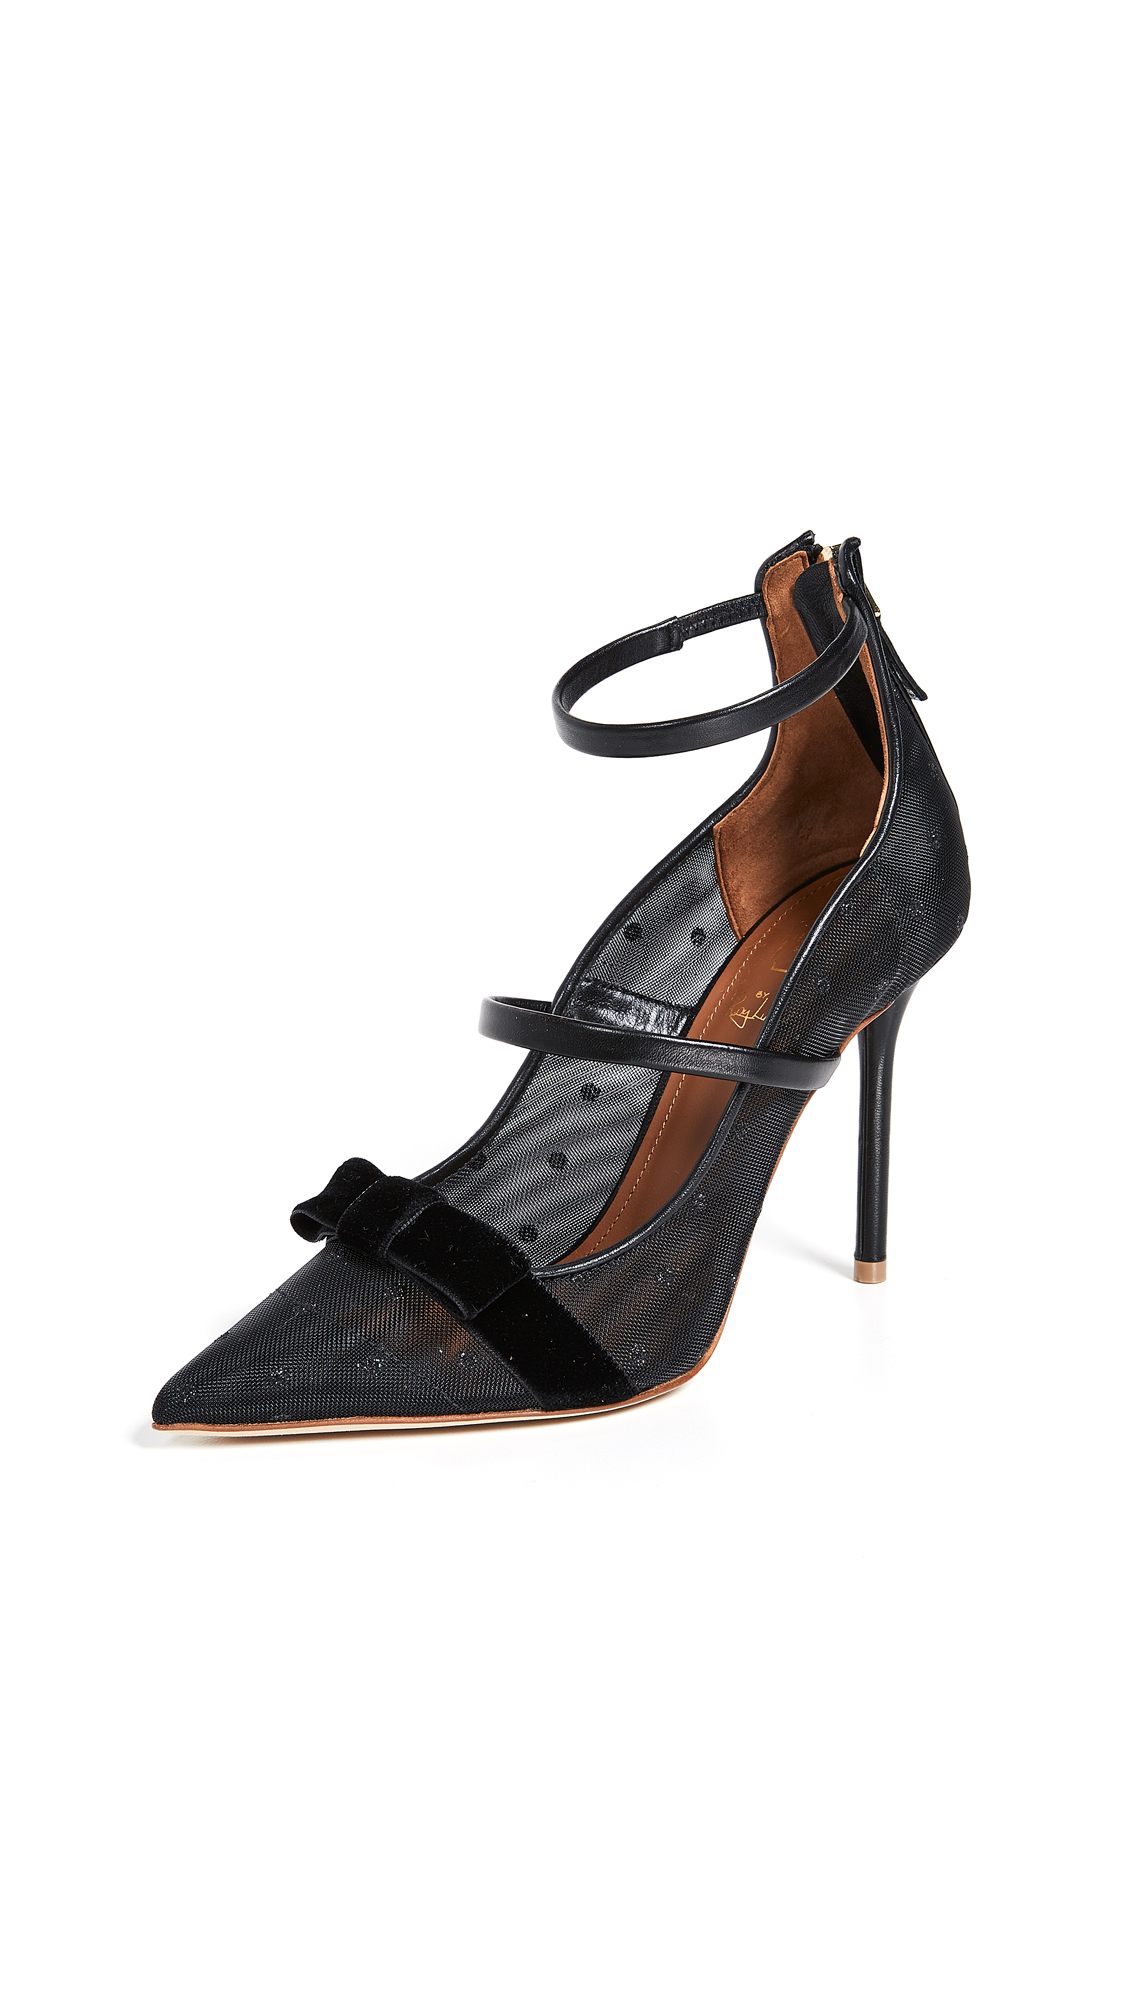 Malone Souliers by Roy Luwolt Monica Luwolt Pumps